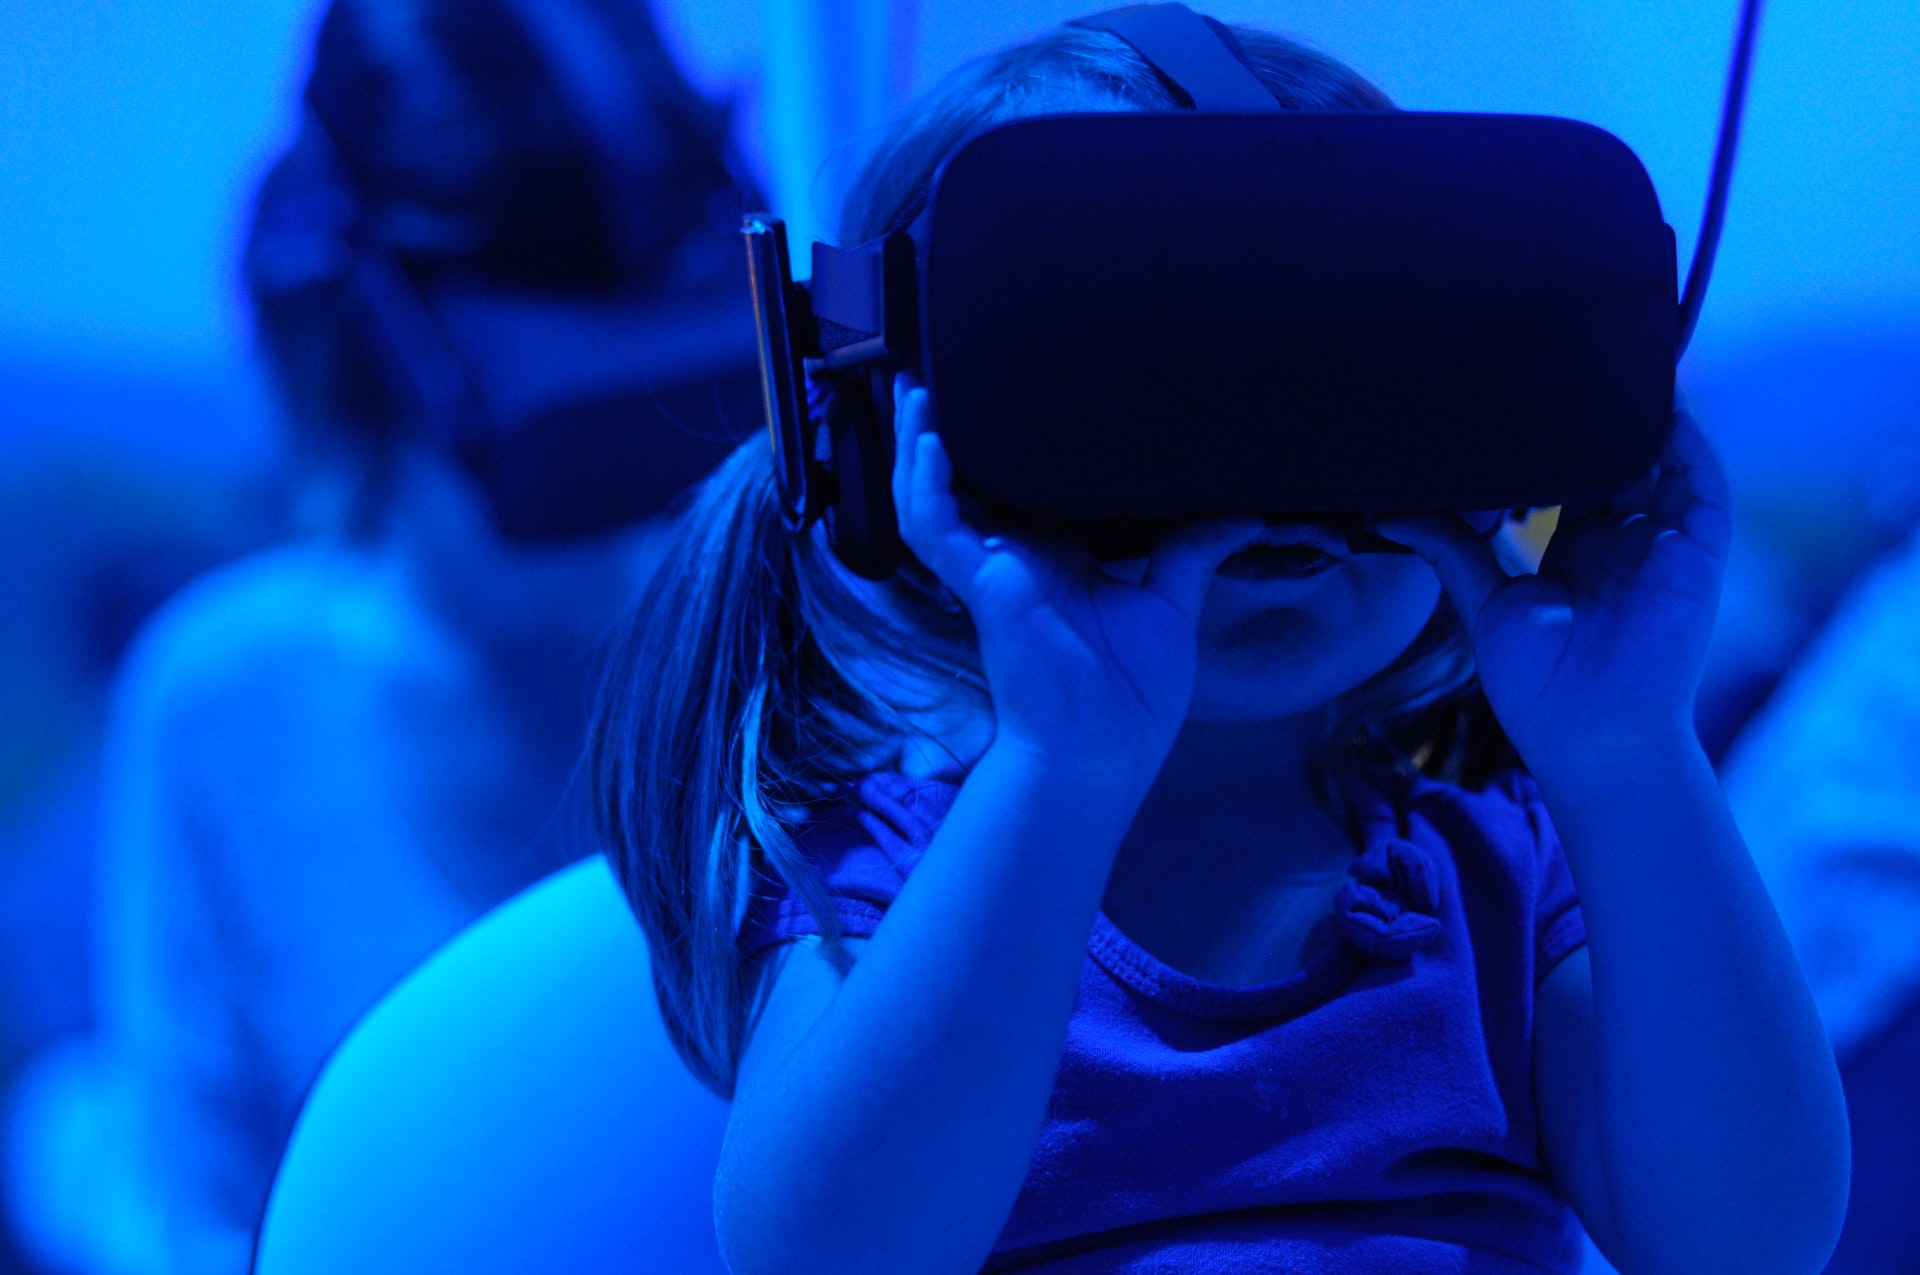 Sportsability Alliance and Covalent Join Forces to Launch a VR Program for Kids with Disabilities